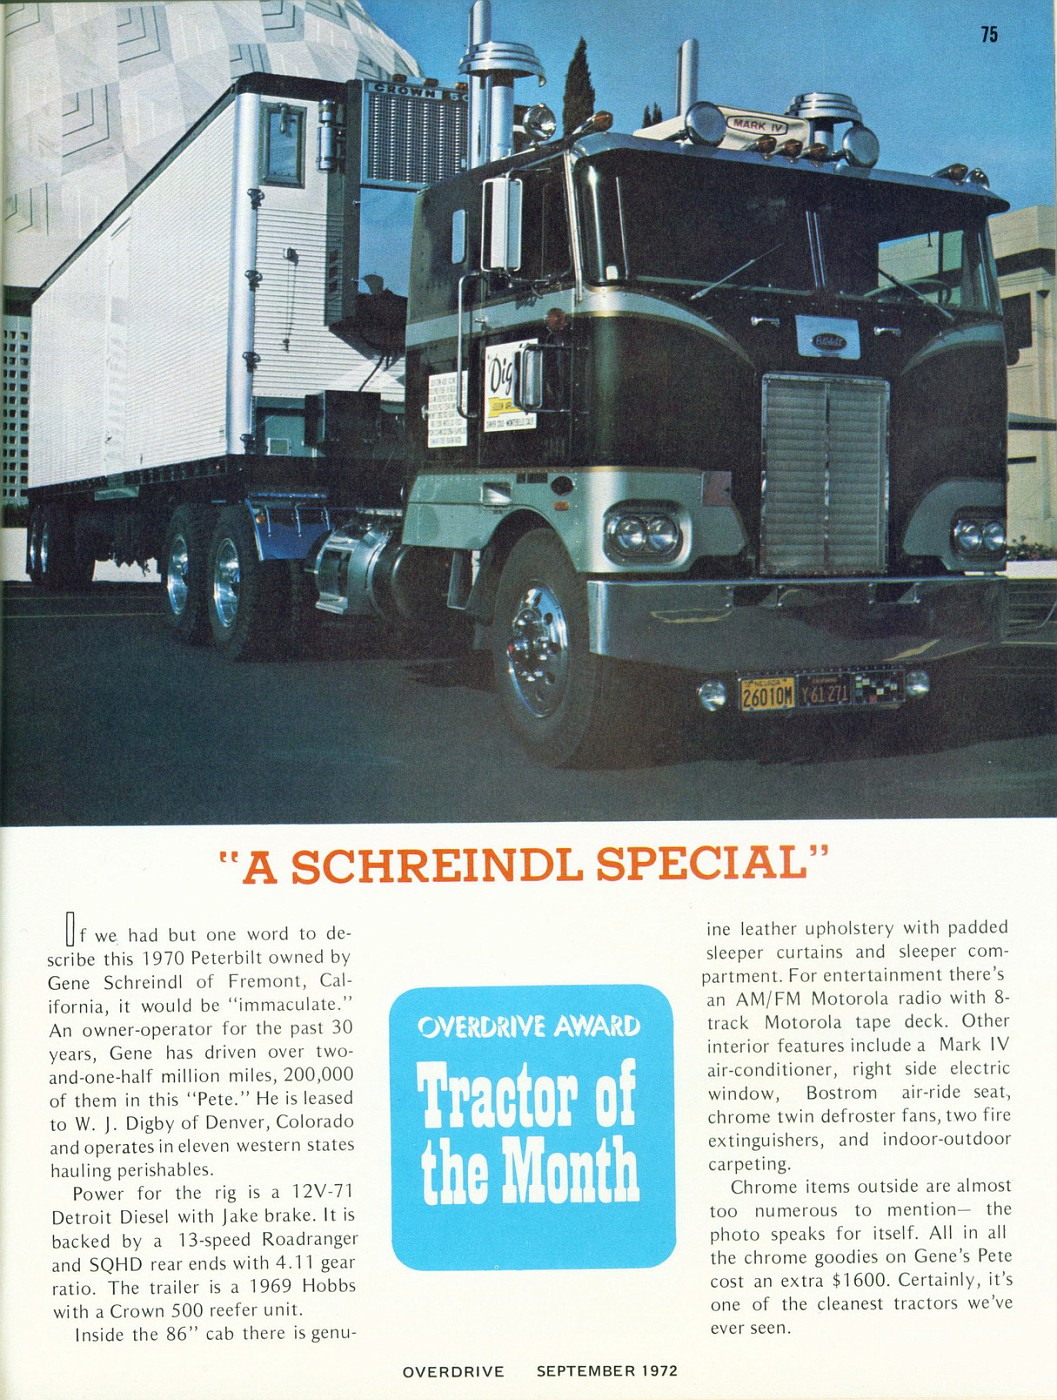 September 1972 Tractor of the Month